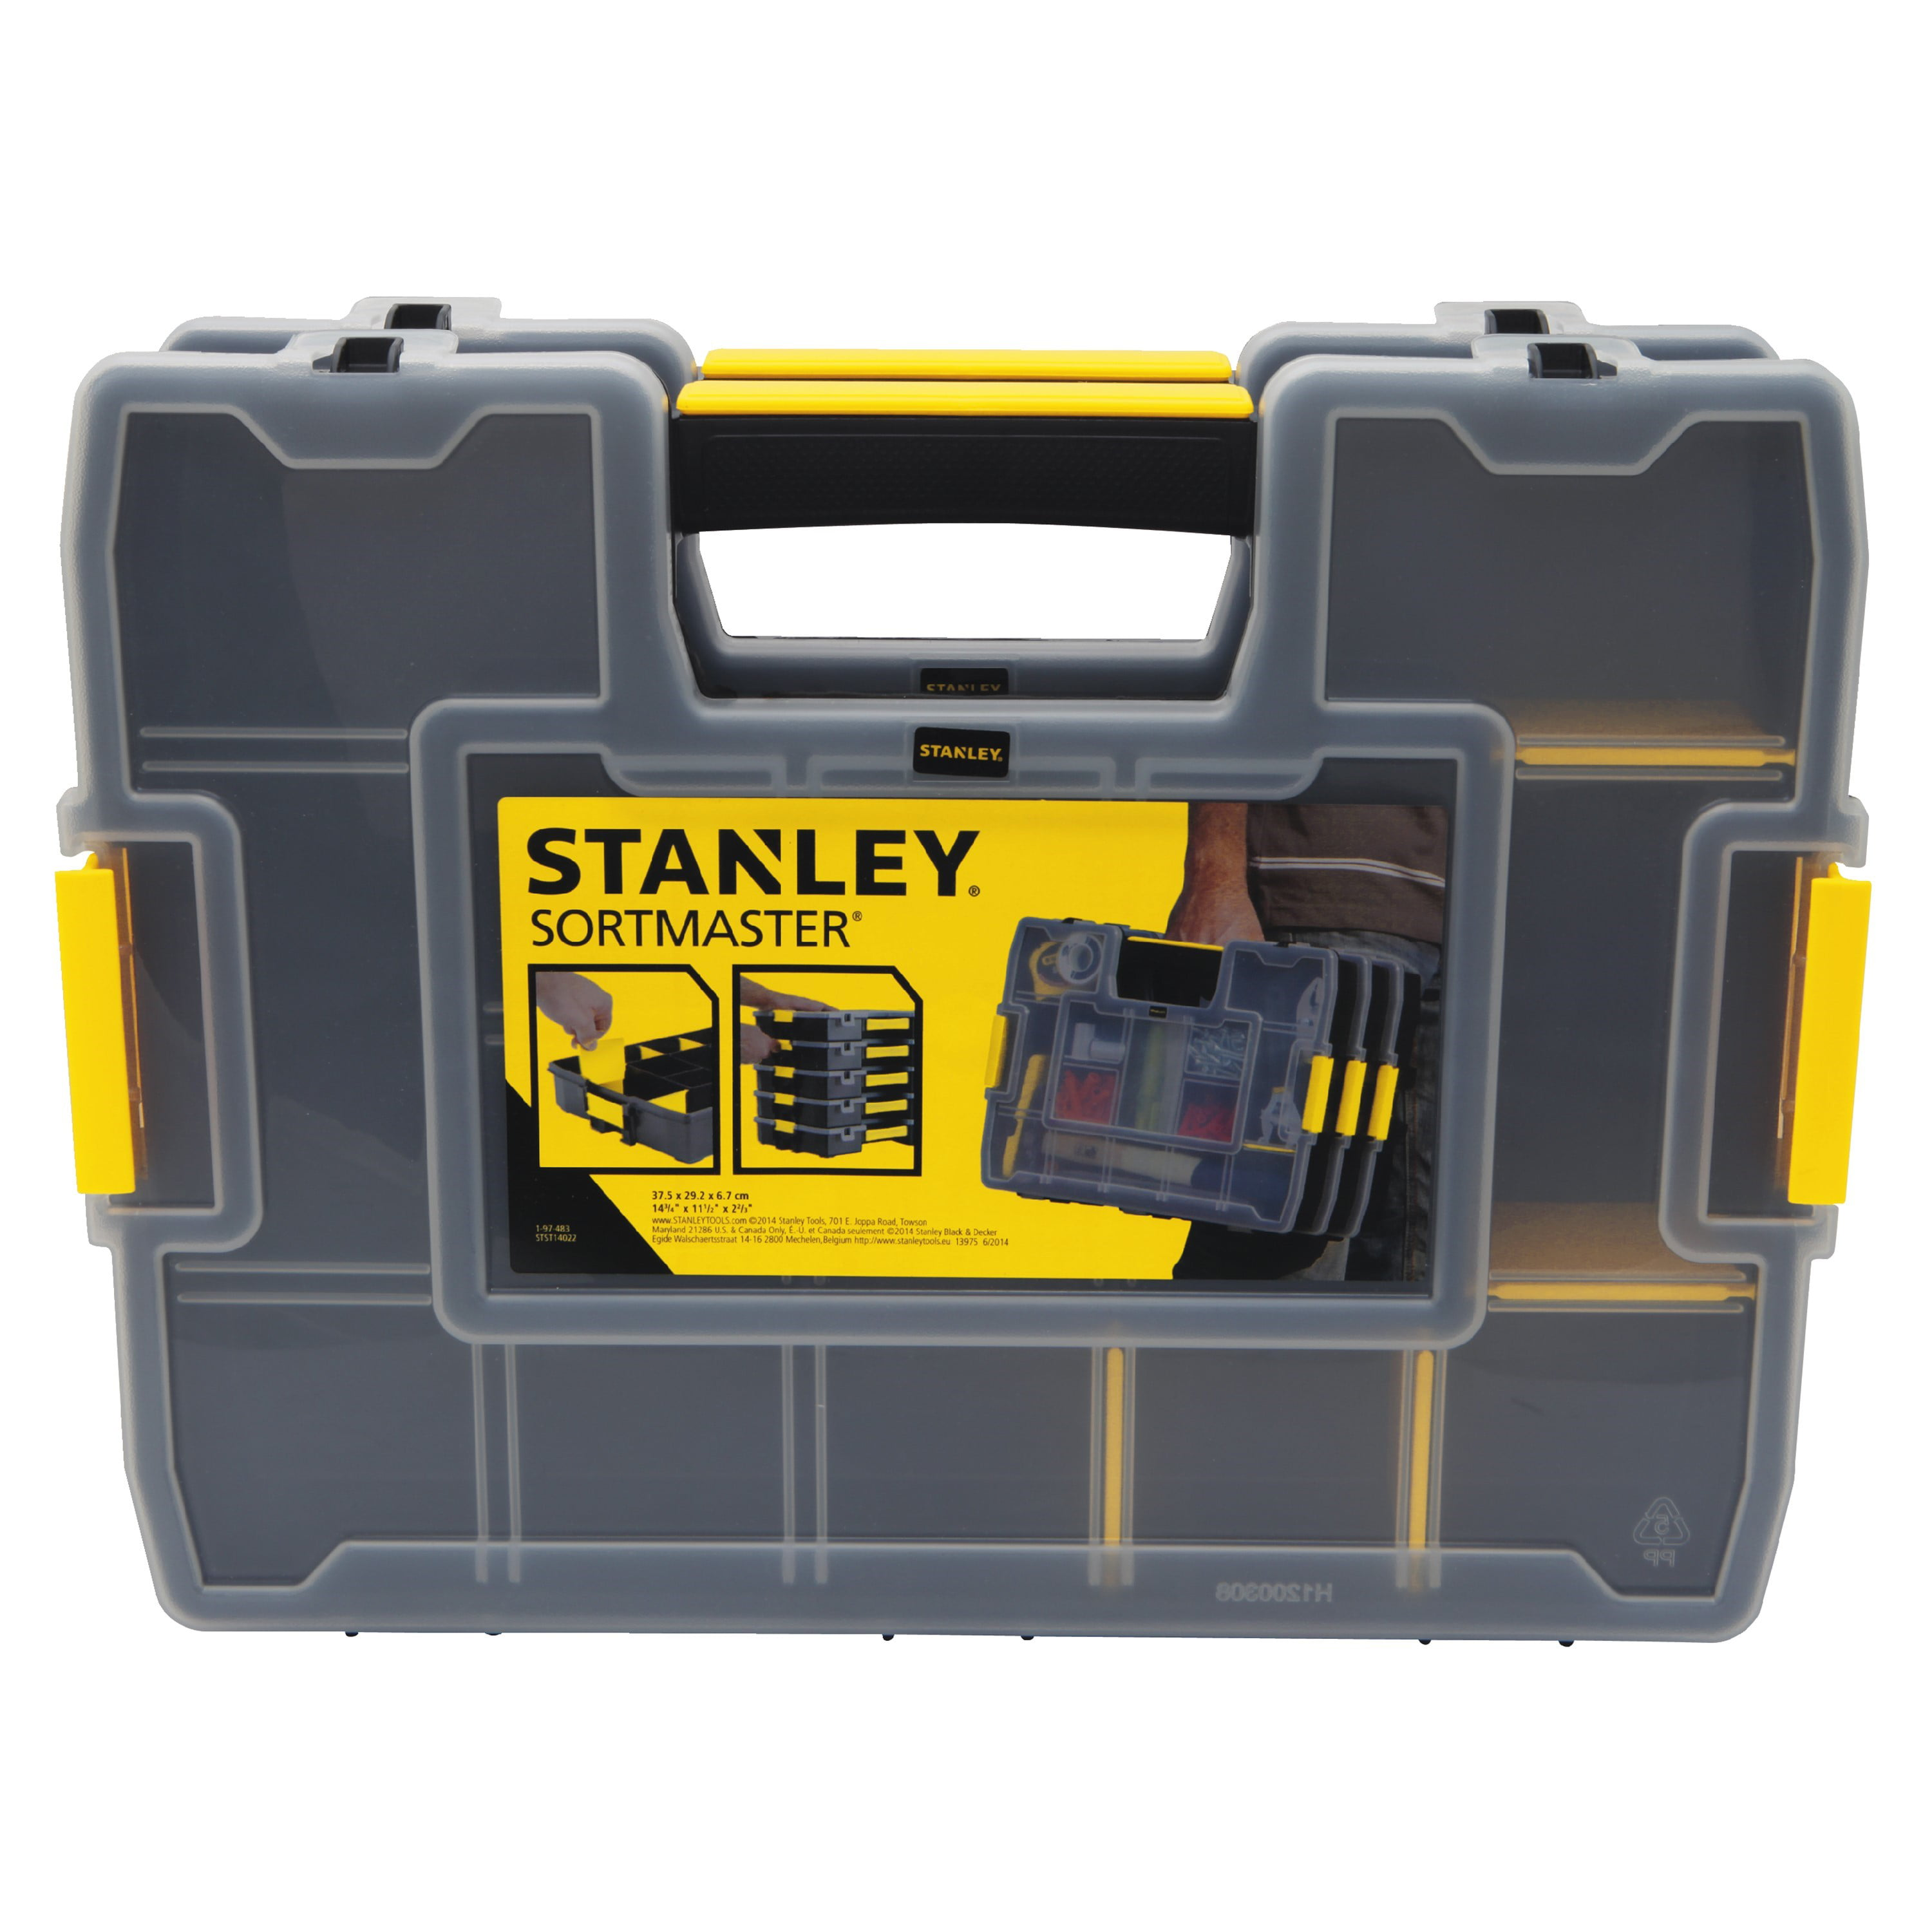 STANLEY SortMaster Junior Organizer | STST14022 by BLACK & DECKER US INC